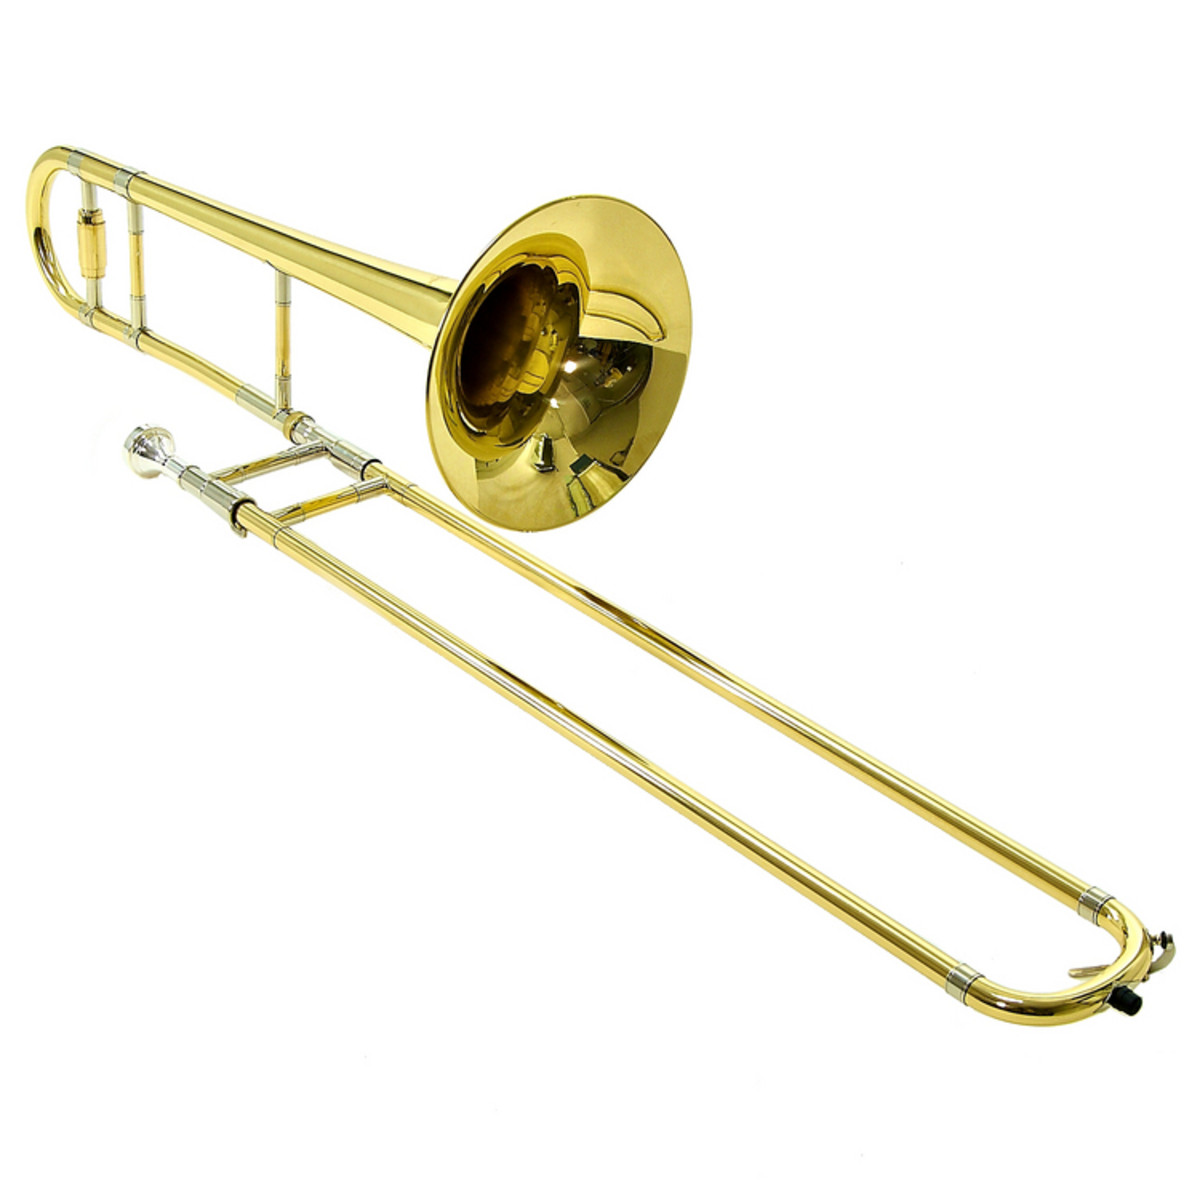 Tenor Trombone in Bb by Gear4music - Ex Demo at Gear4music